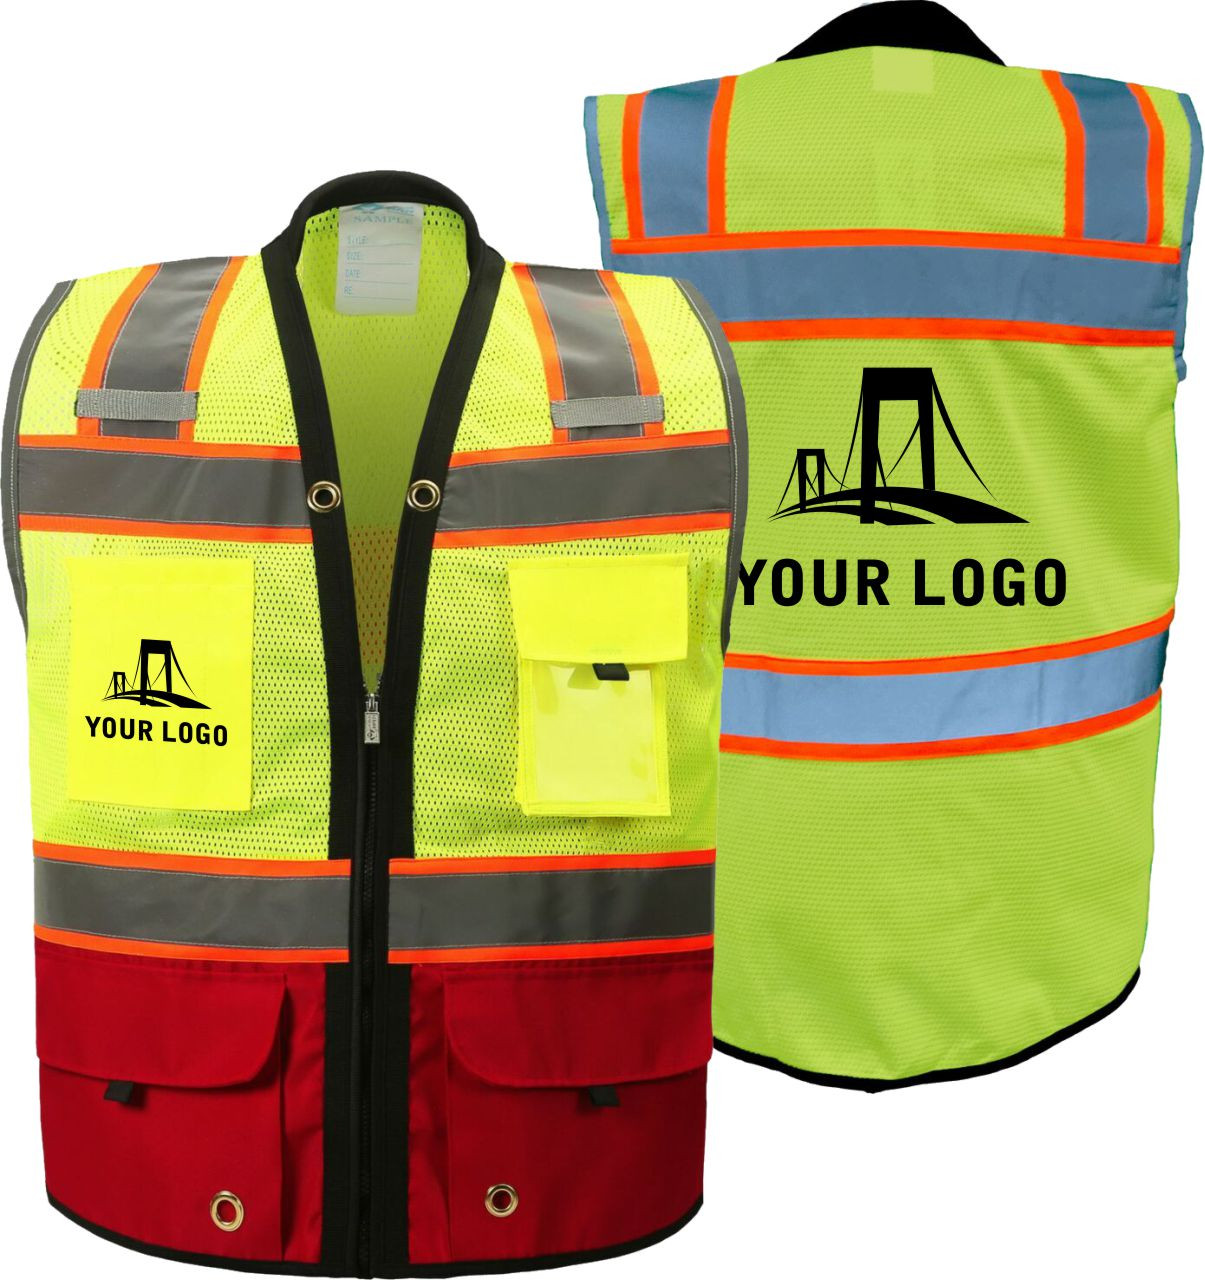 Custom Printed Two Tone Class 2 Premium Surveyors Safety Vest with Red Solid Bottom | Safety Vest woth Logo